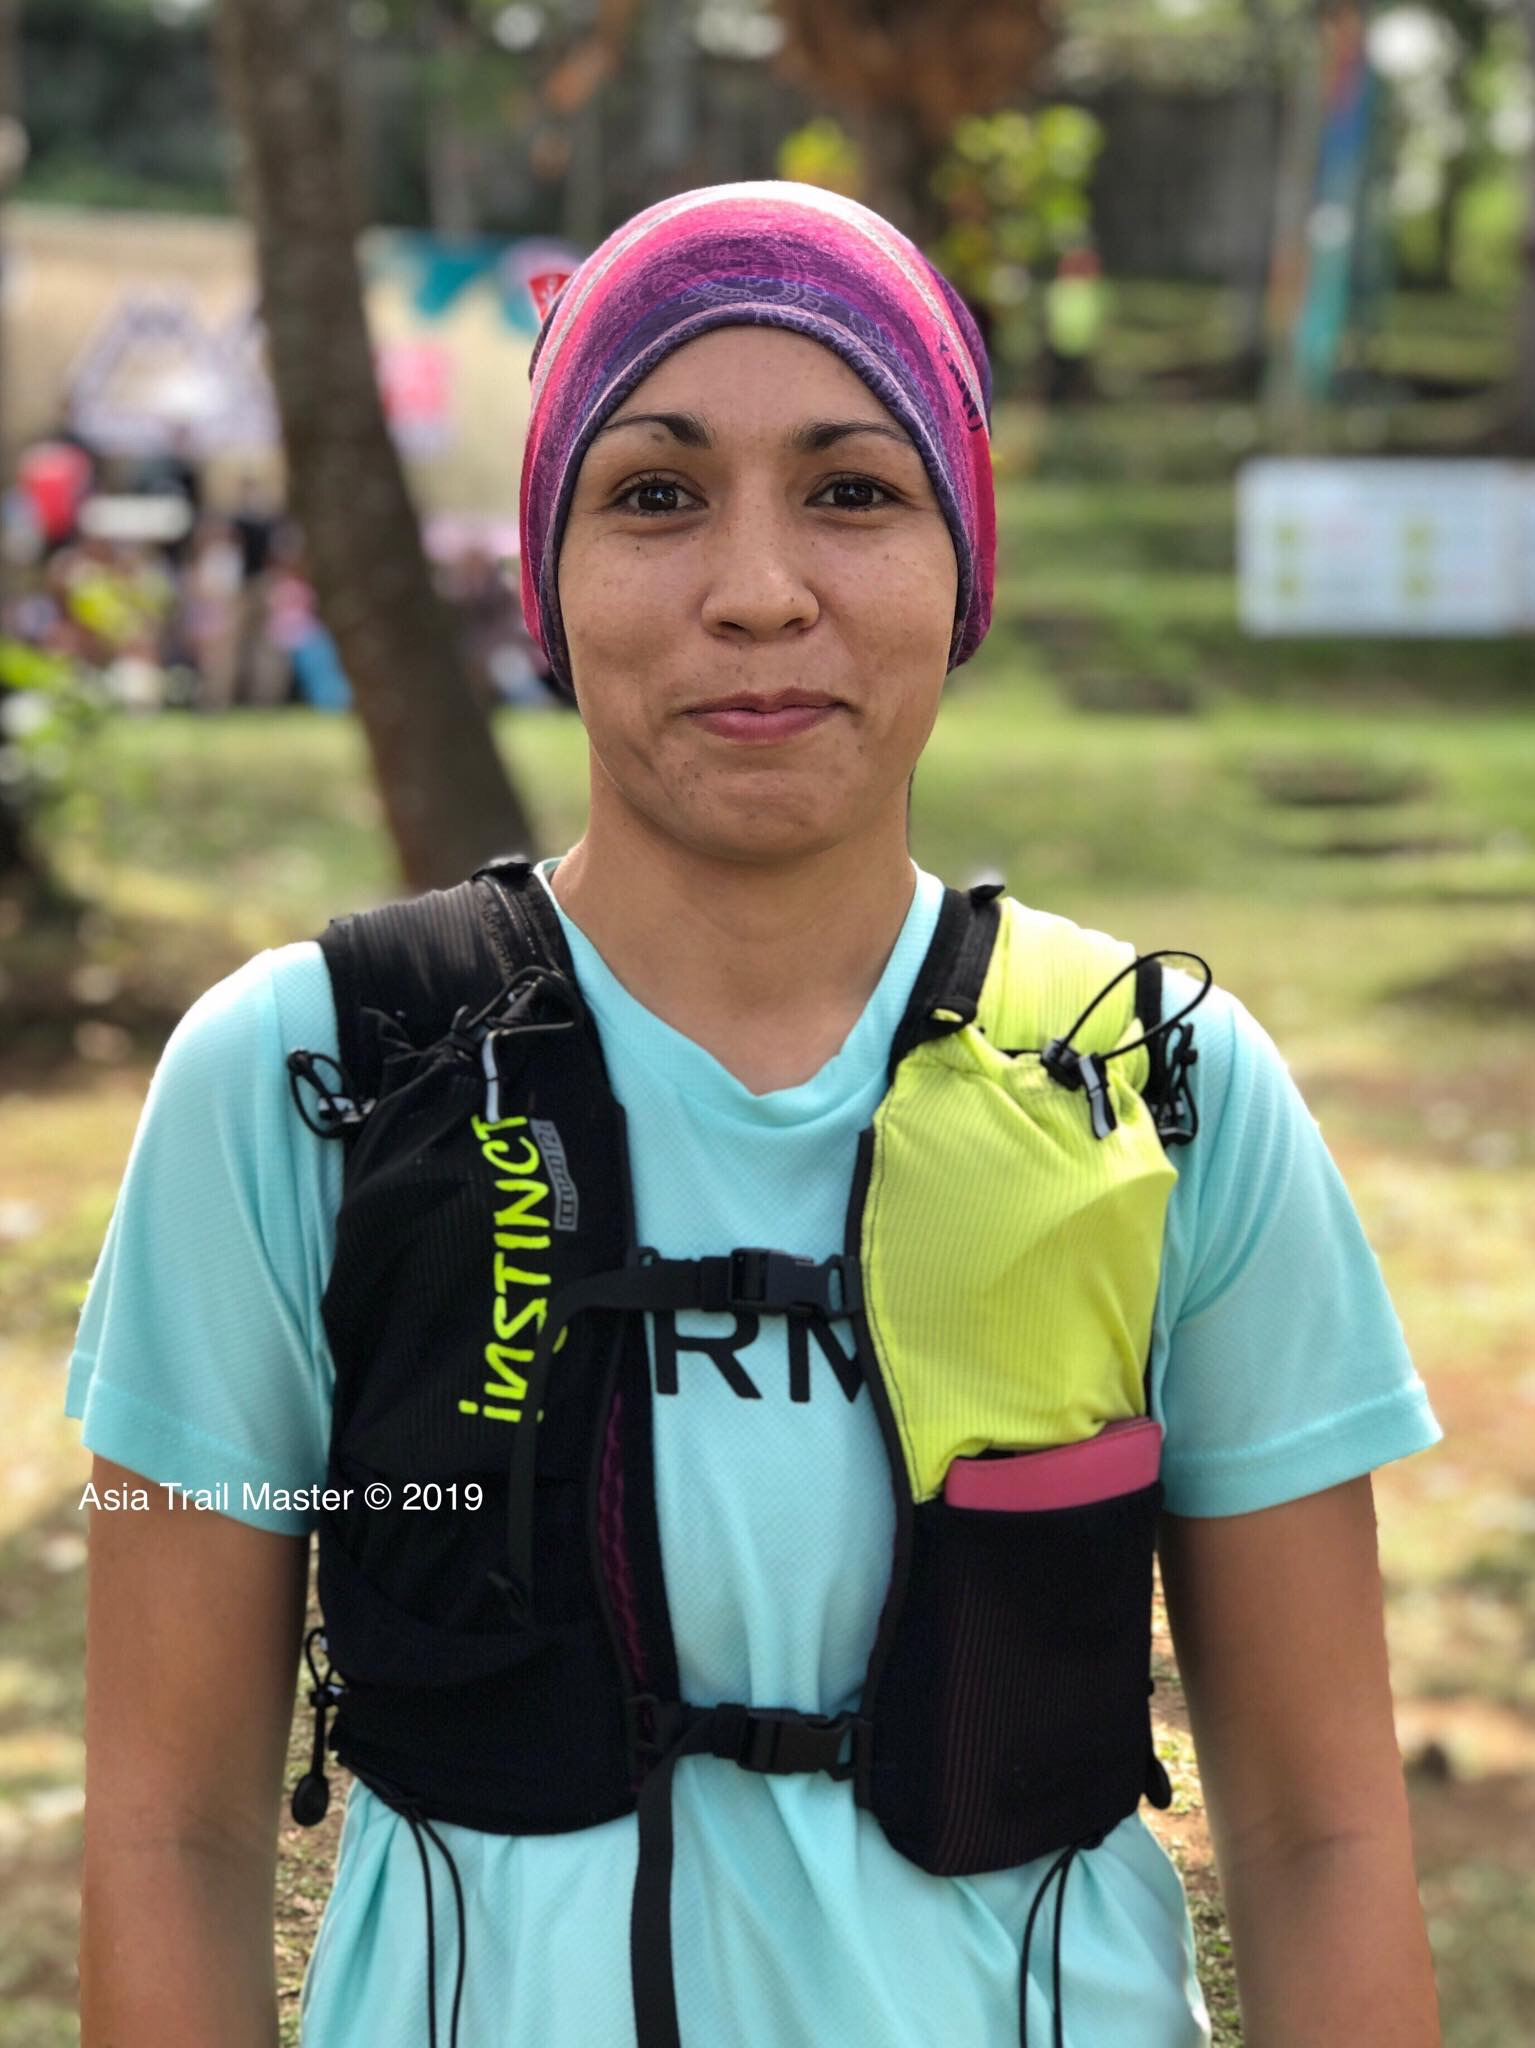 Tahira continues her return to the top of the sport